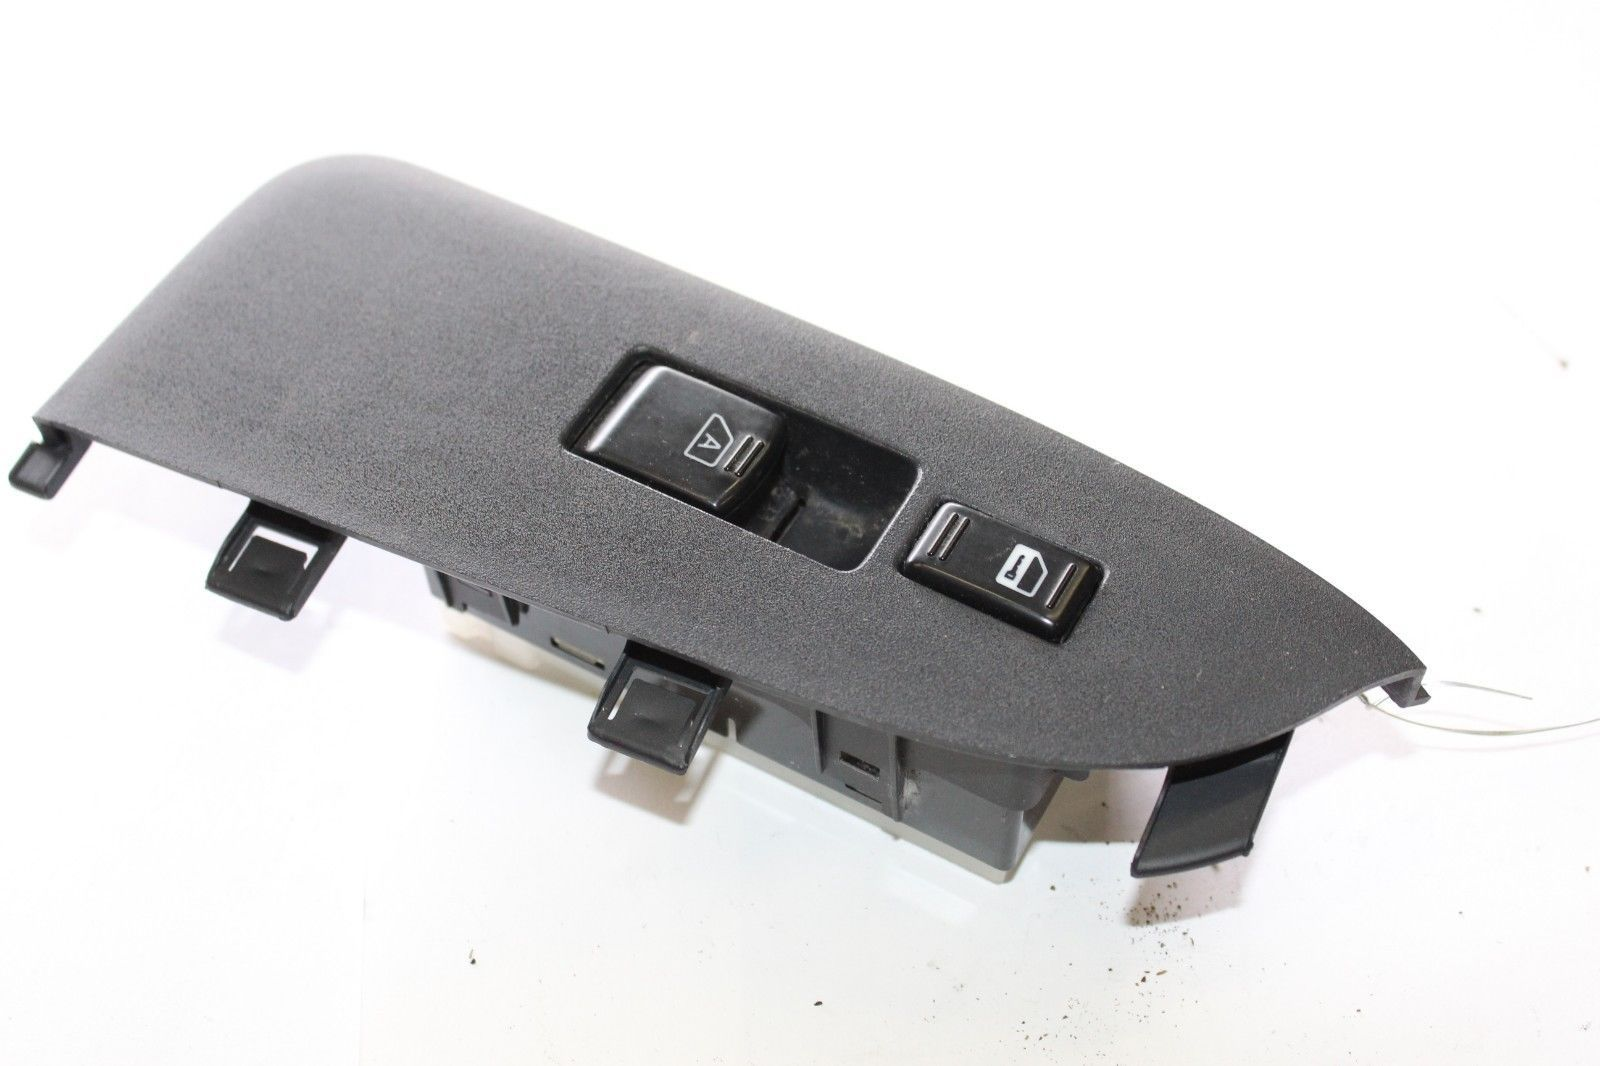 Primary image for 2006-2010 INFINITI M45 SEDAN FRONT PASSENGER RIGHT WINDOW SWITCH TRIM J2371